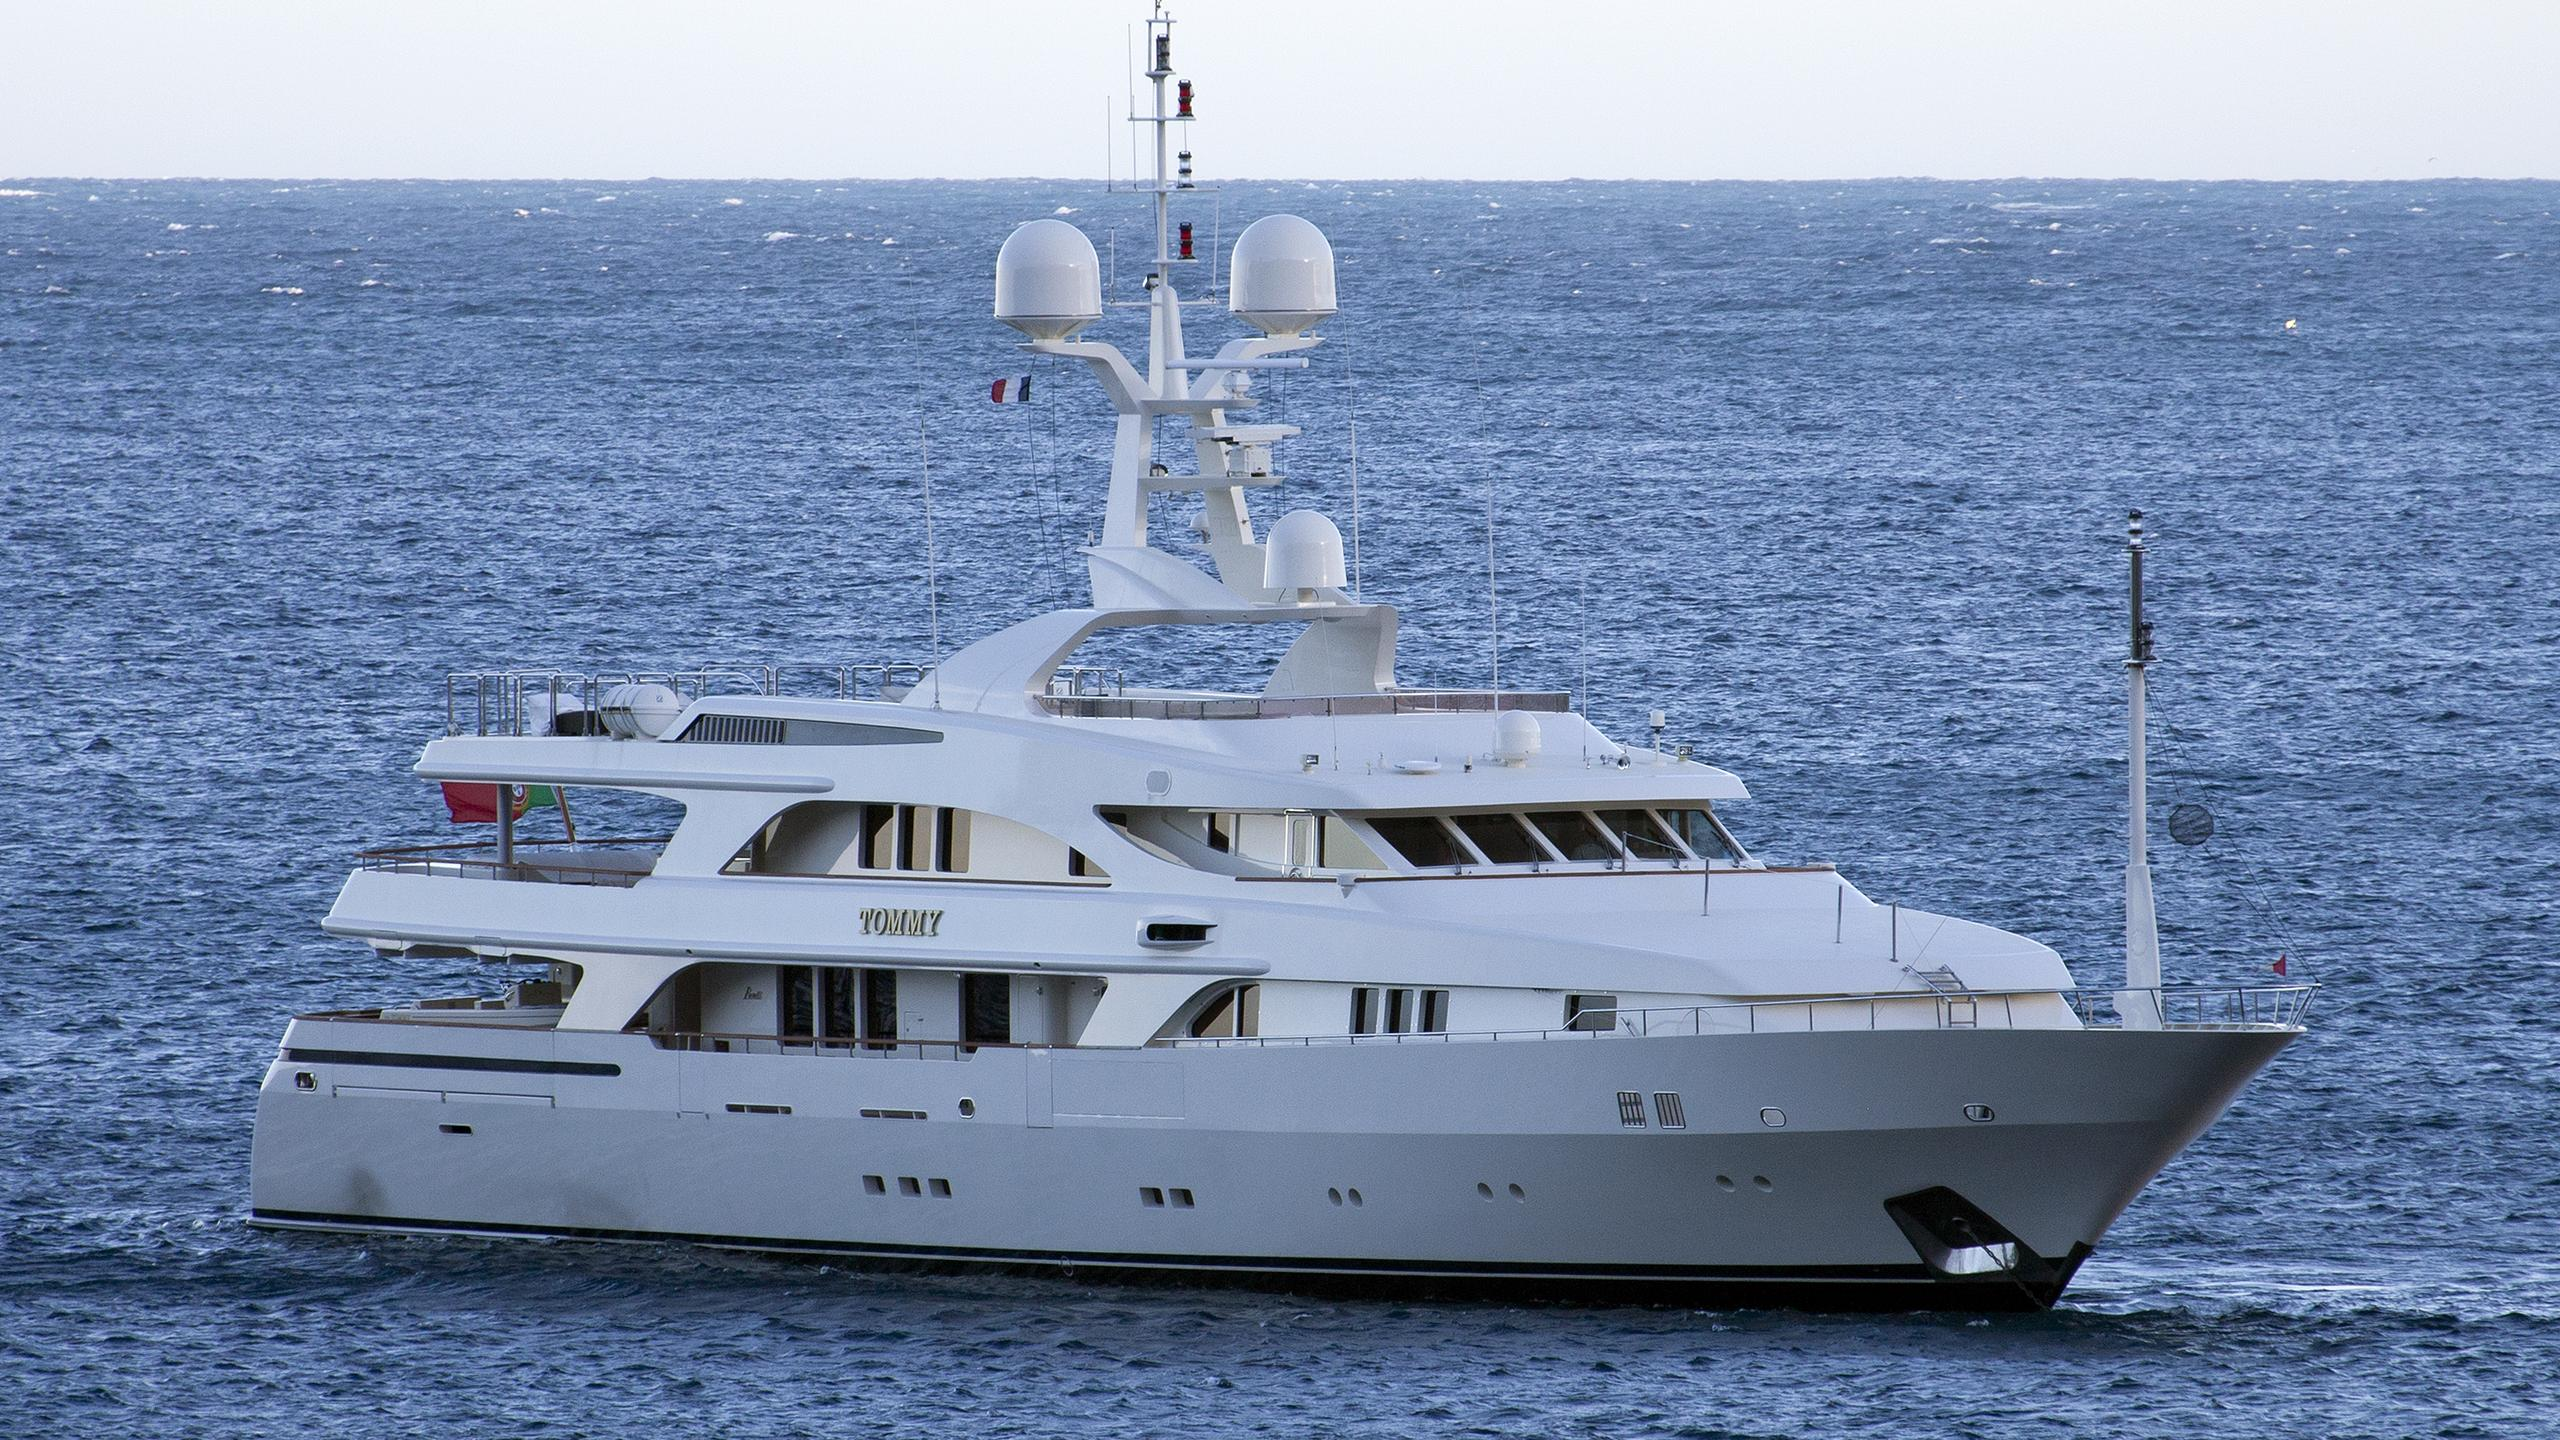 tommy-yacht-exterior